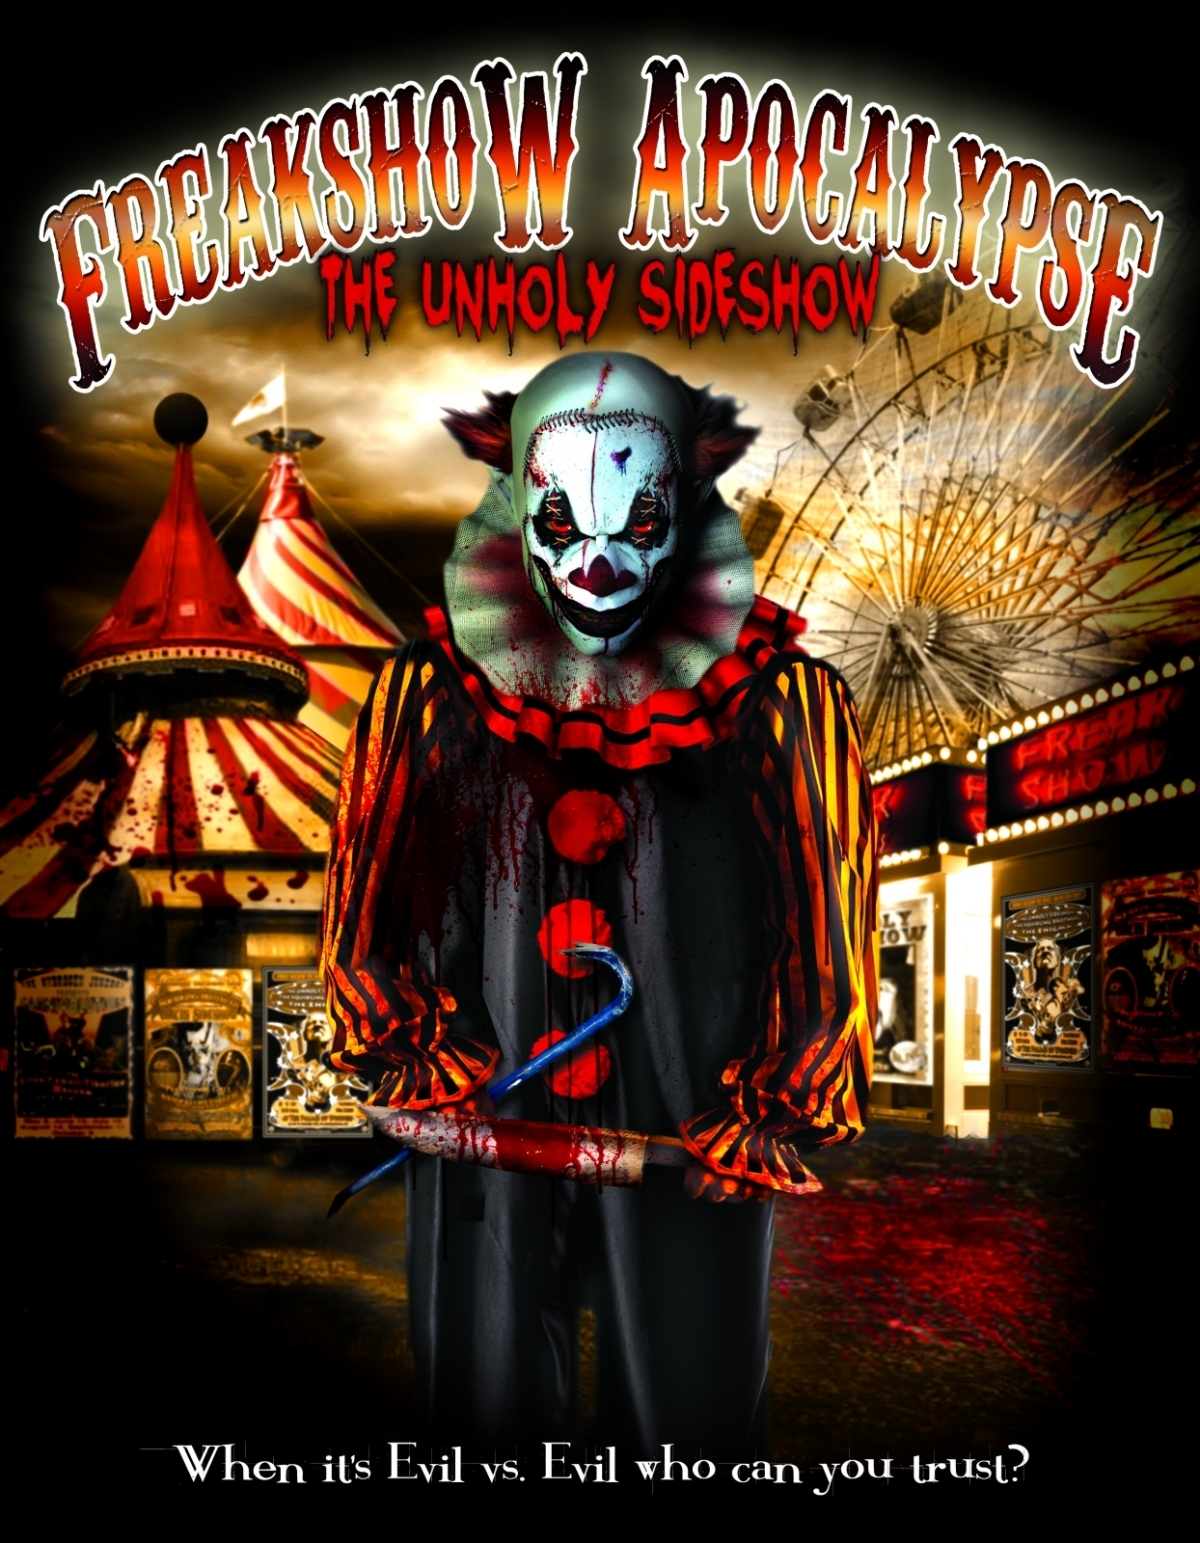 The Freakshow Apocalypse